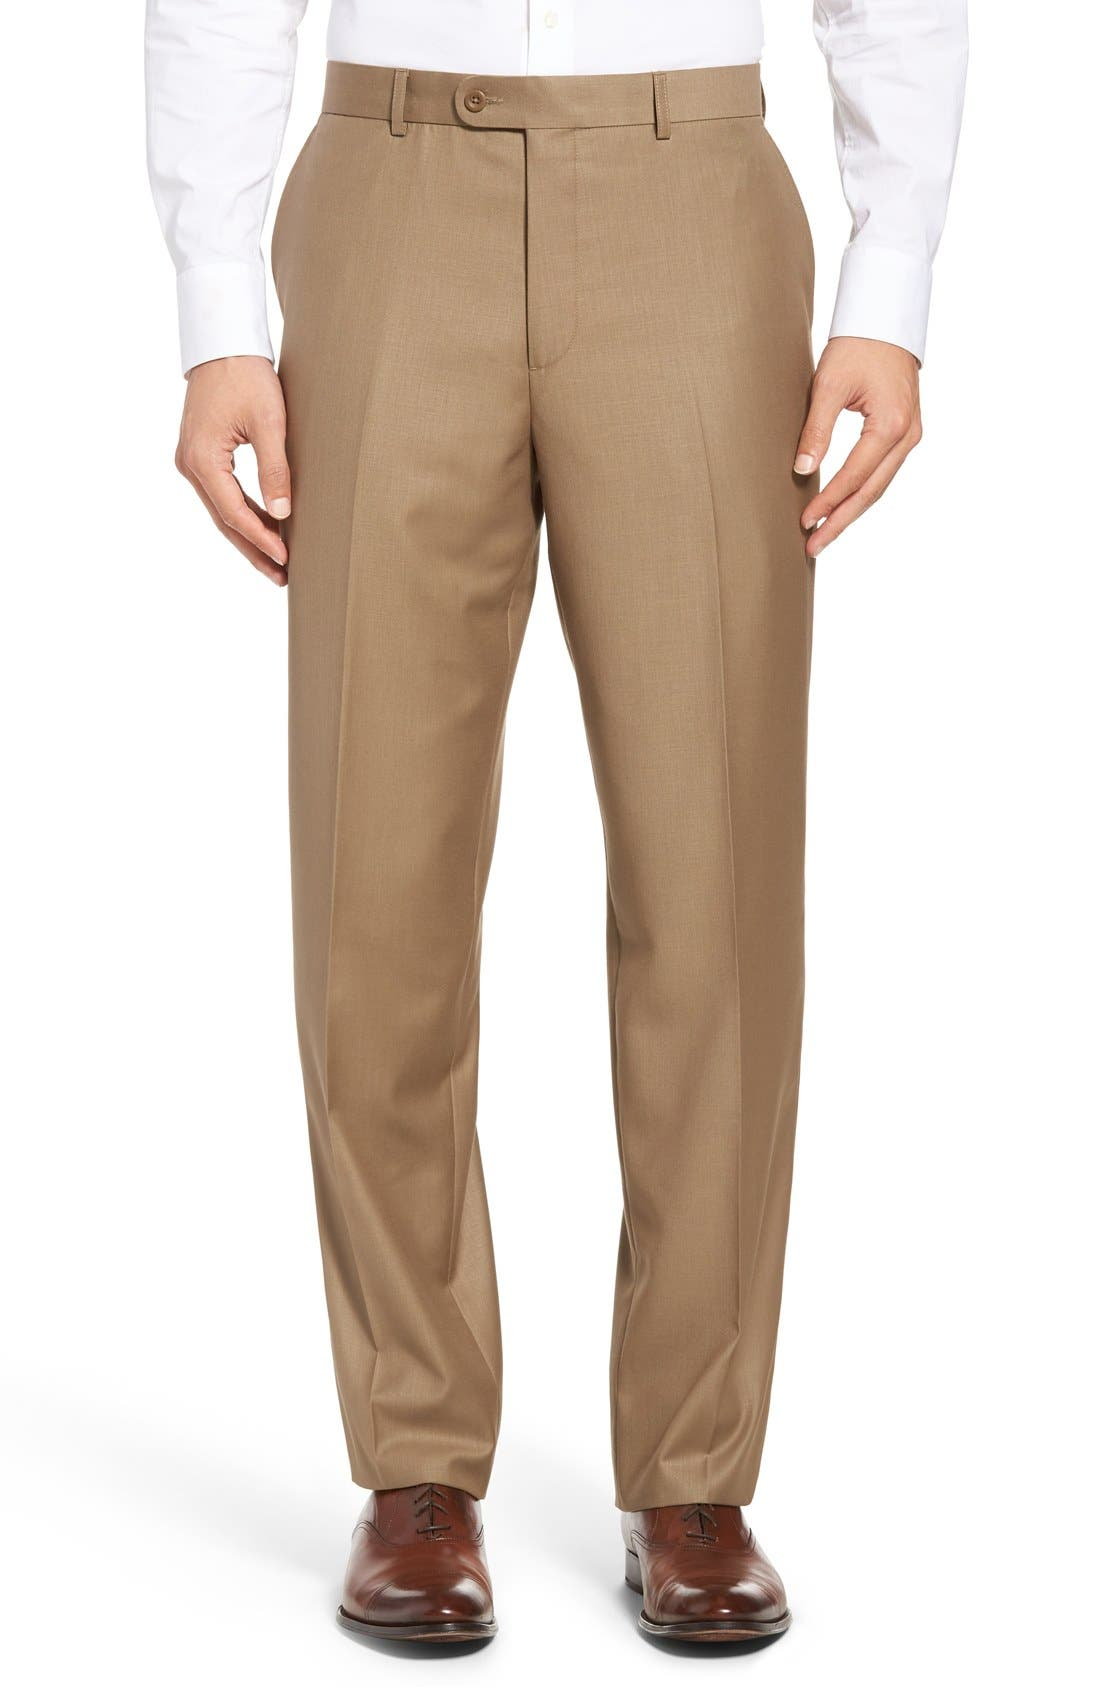 Linea Naturale 'Travel Genius - Hawk' Flat Front Pants